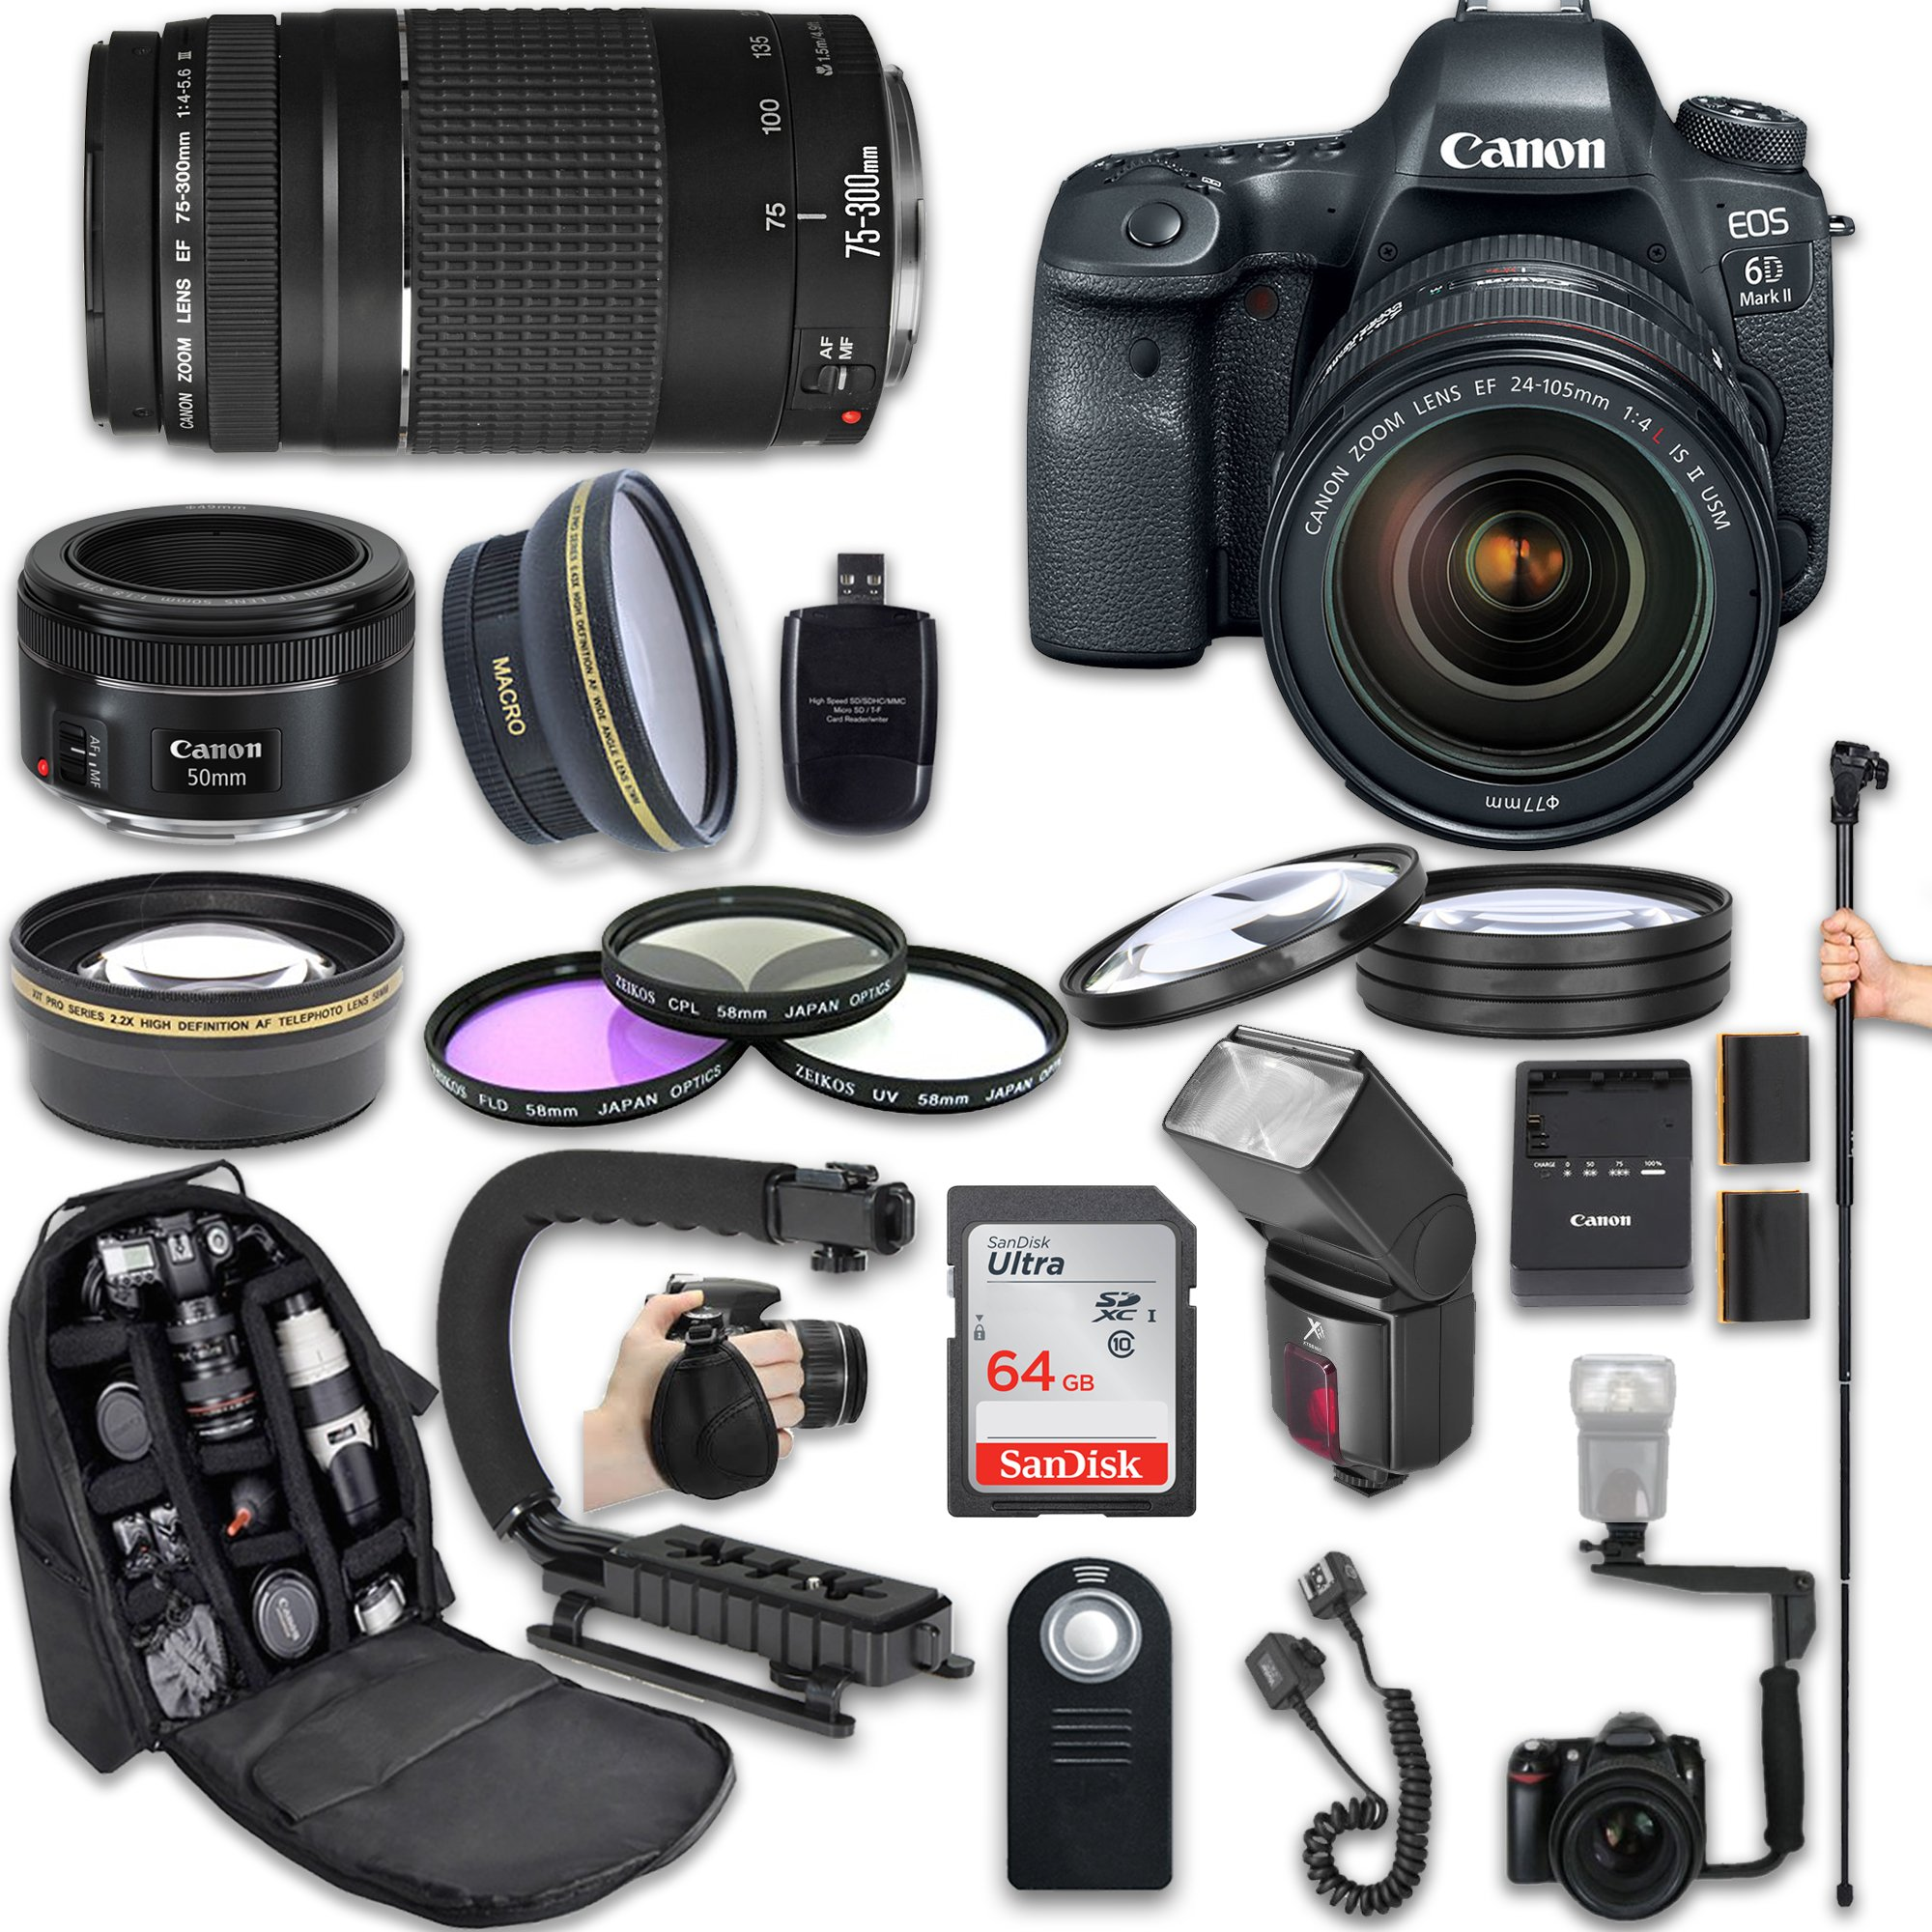 Canon EOS 6D Mark II DSLR Camera with Canon EF 24-105mm f/4L IS II USM Lens + Canon EF 75-300mm f/4-5.6 III Lens + Canon EF 50mm f/1.8 STM Lens + Fully Dedicated TTL Flash (23 items kit) by Canon